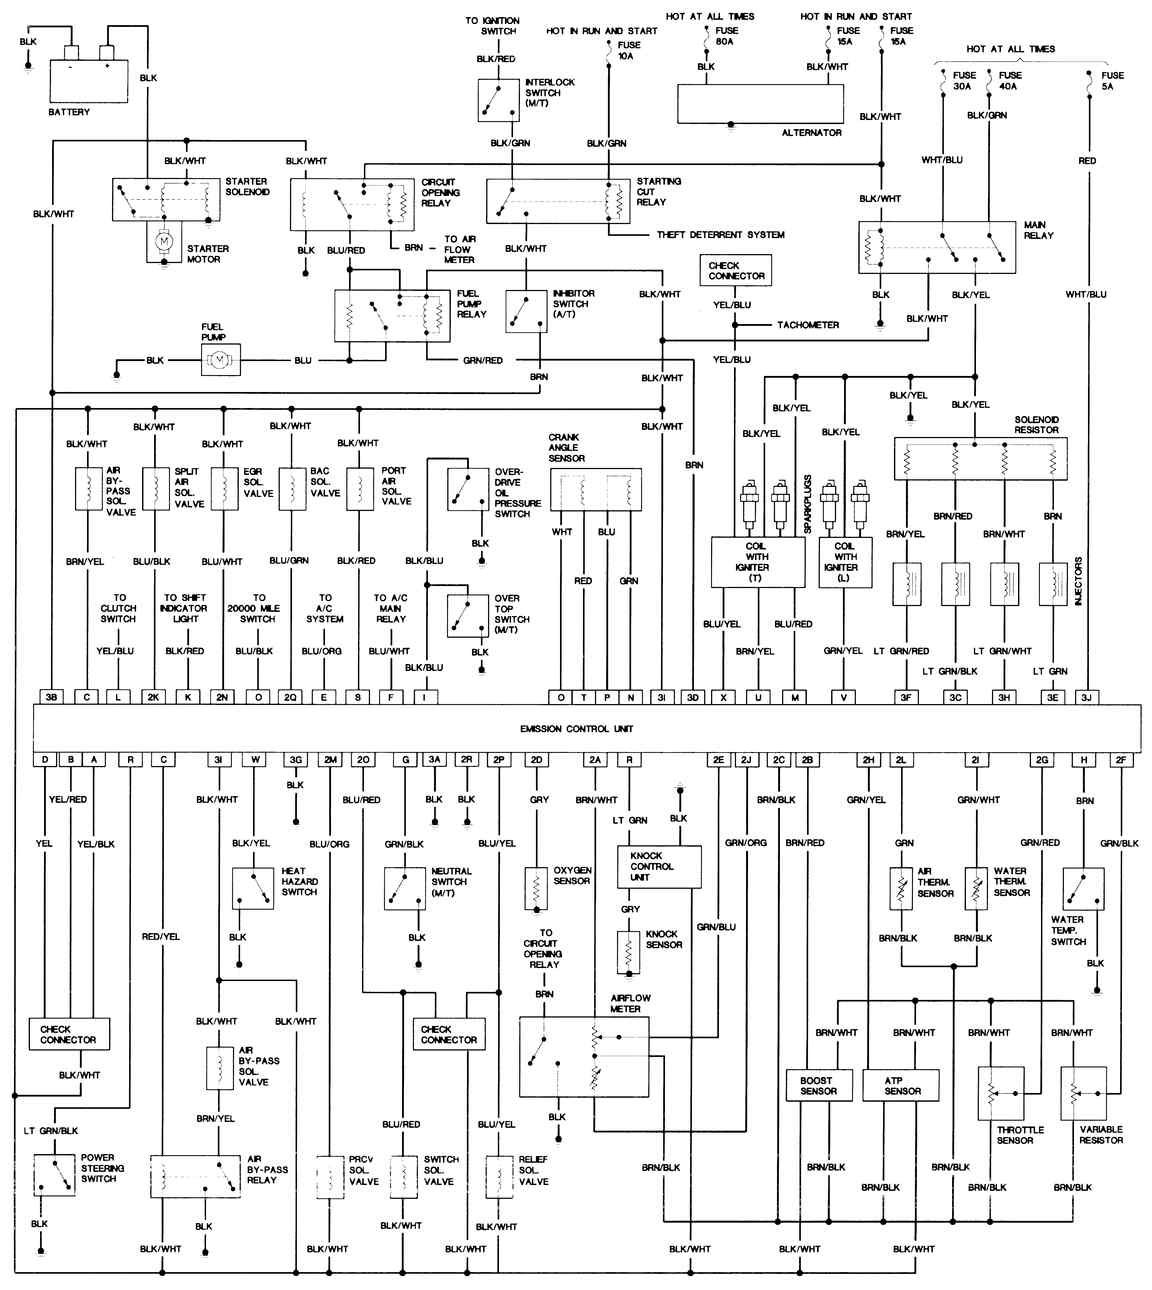 1979 Mazda Rx7 Wiring Diagram Block And Schematic Diagrams Images Gallery